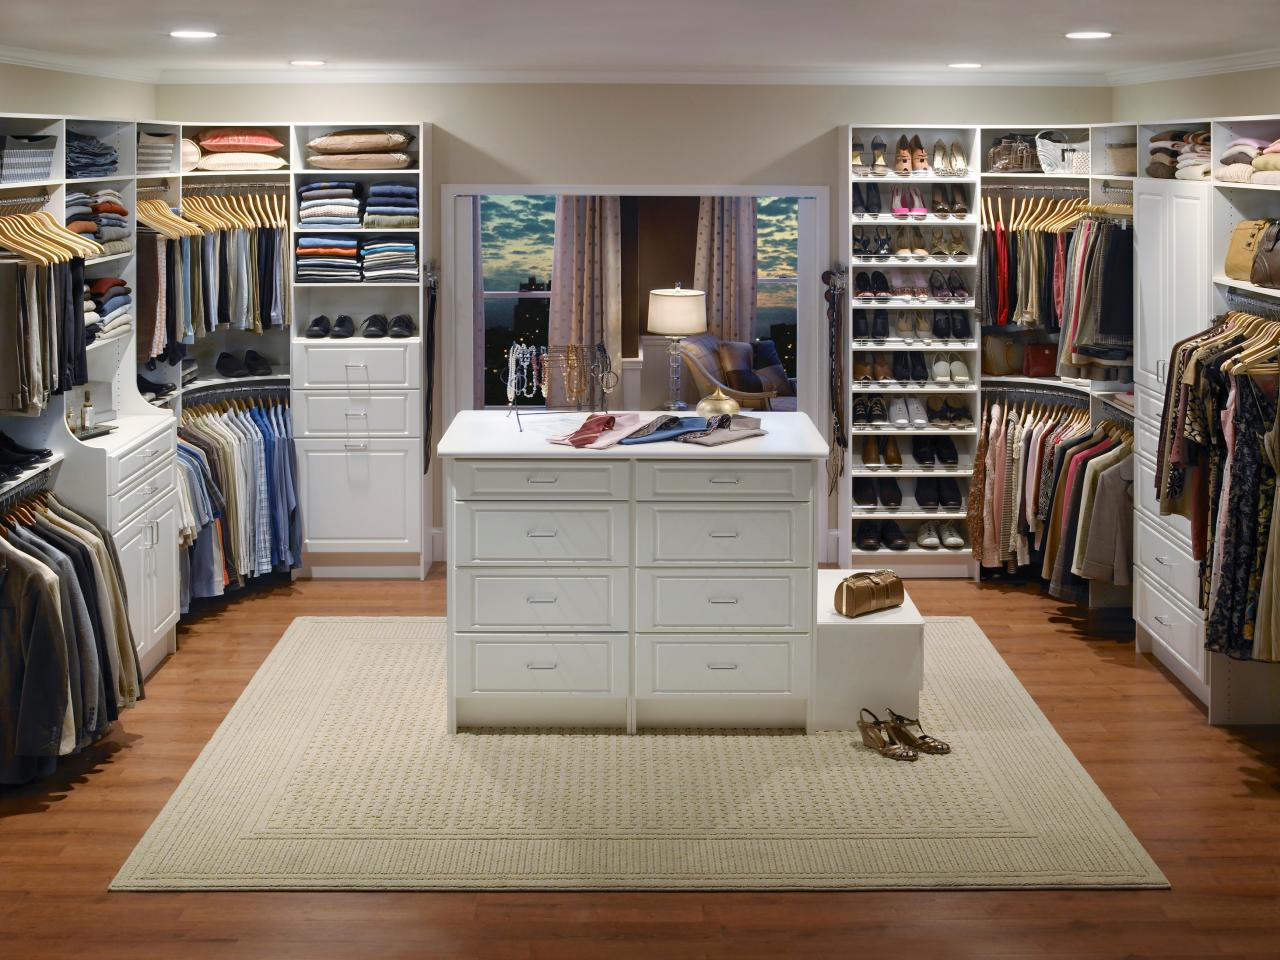 Merveilleux Traditional Walk In Closet With Open Shelving Units And Island With Drawers